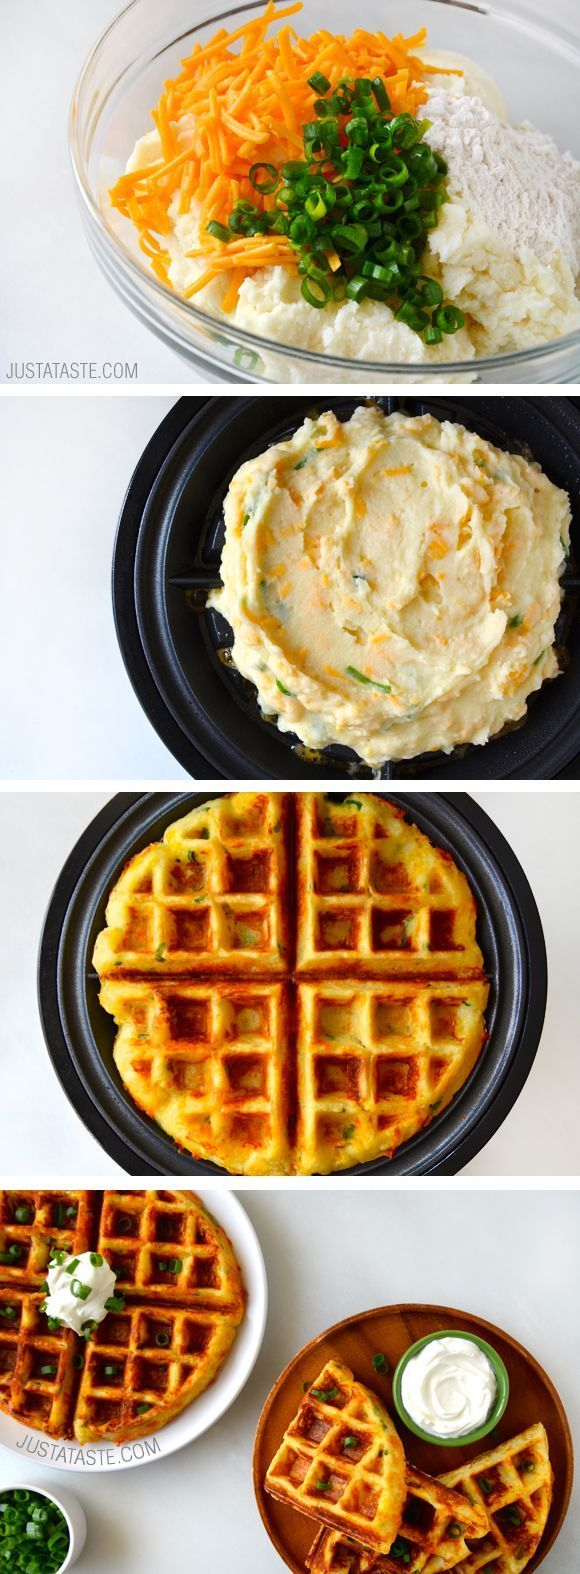 I love mashed potato pancakes - can't wait to try this cheesy waffle!: